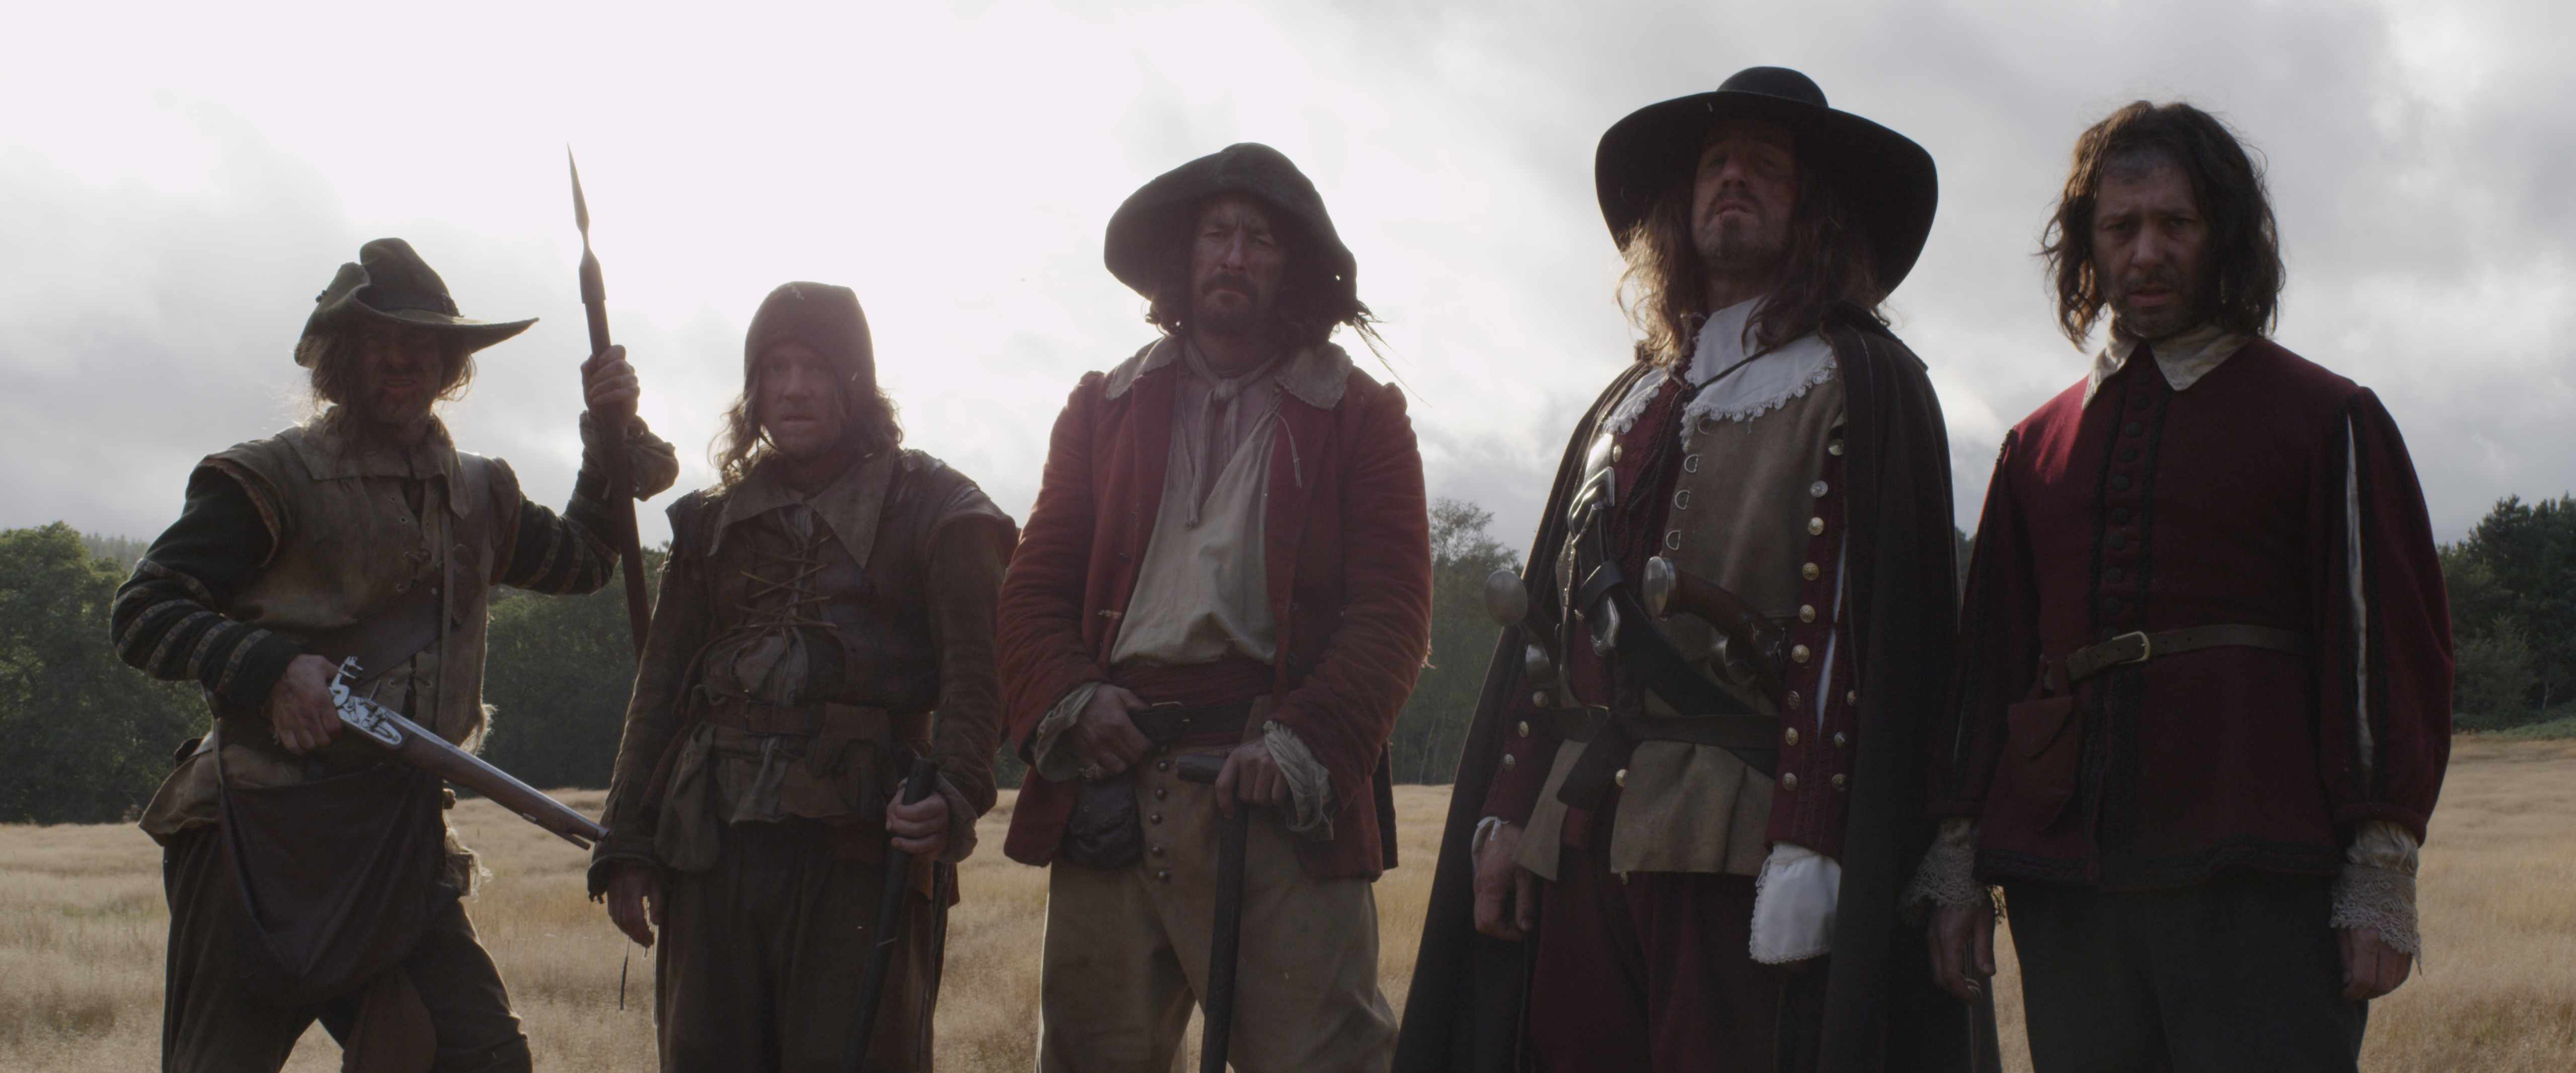 the chaps in A Field In England.jpeg